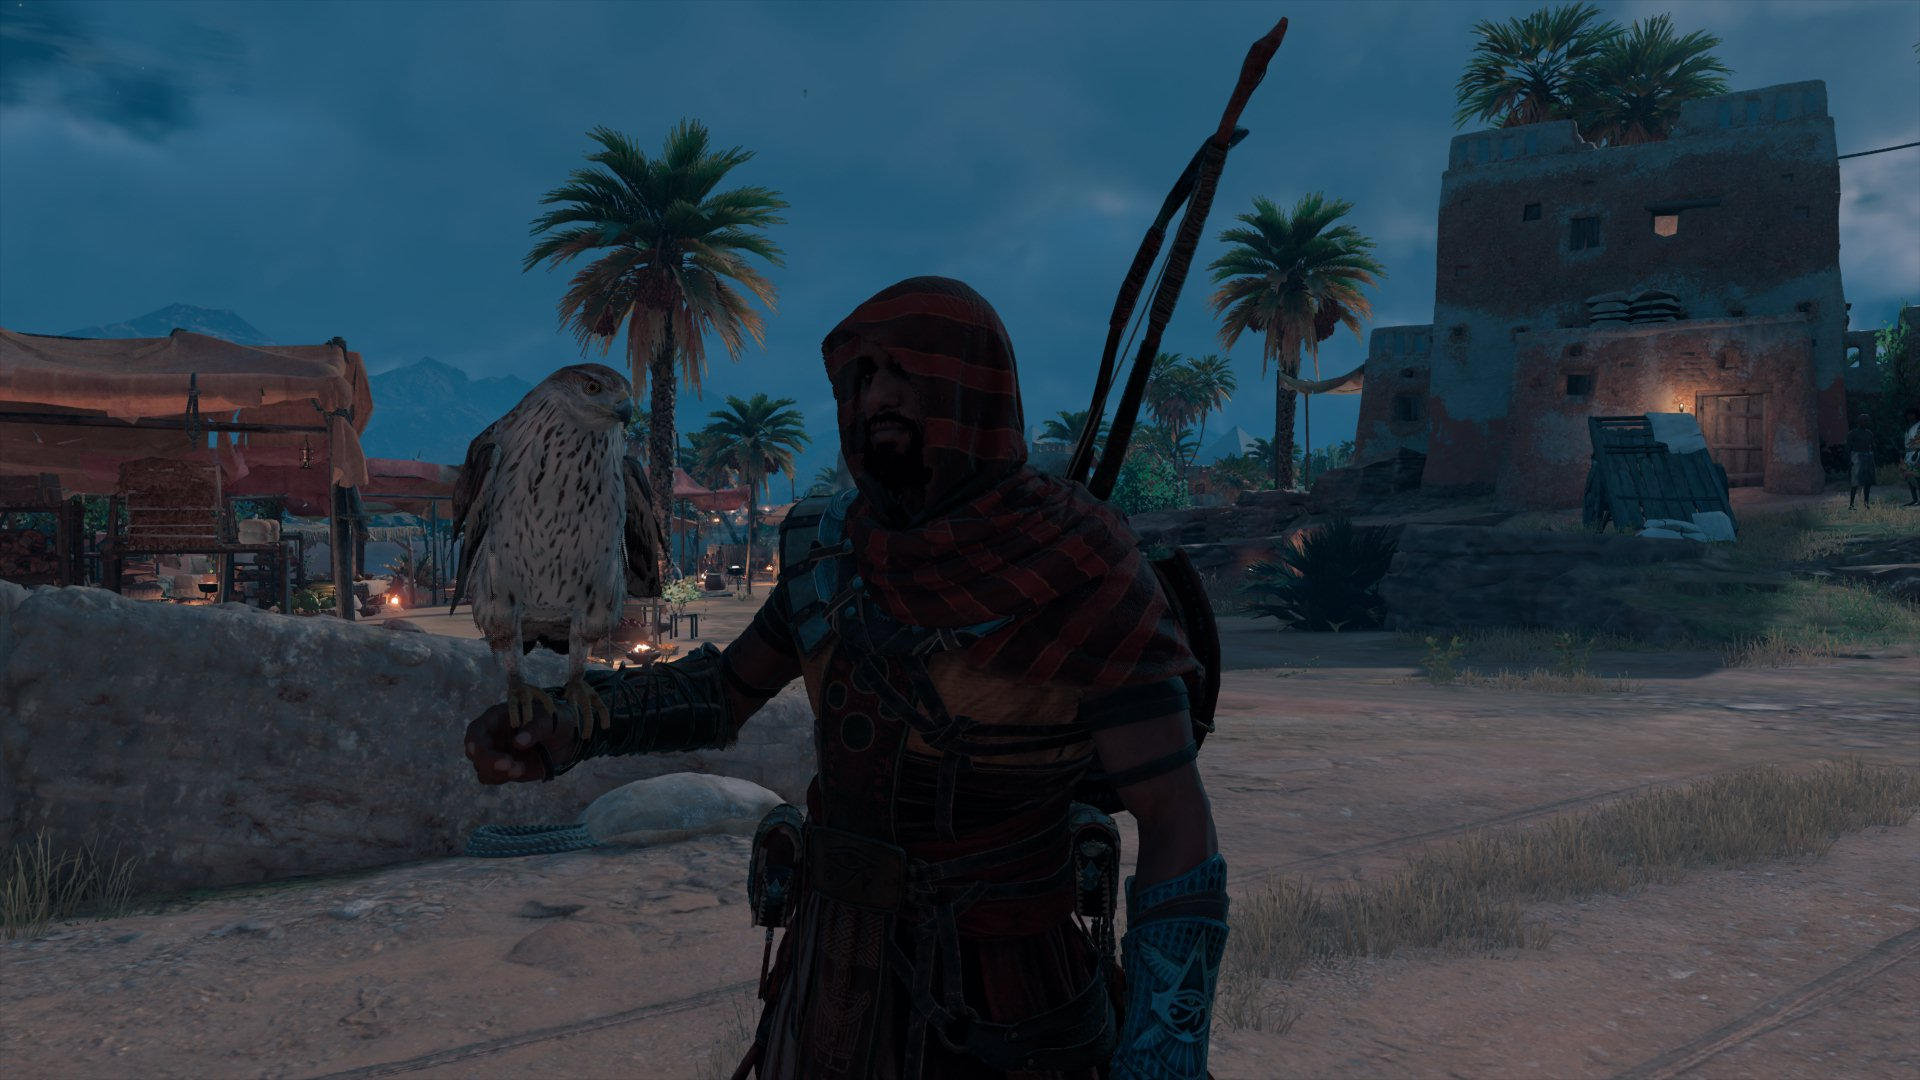 20180211013602.jpg - Assassin's Creed: Origins